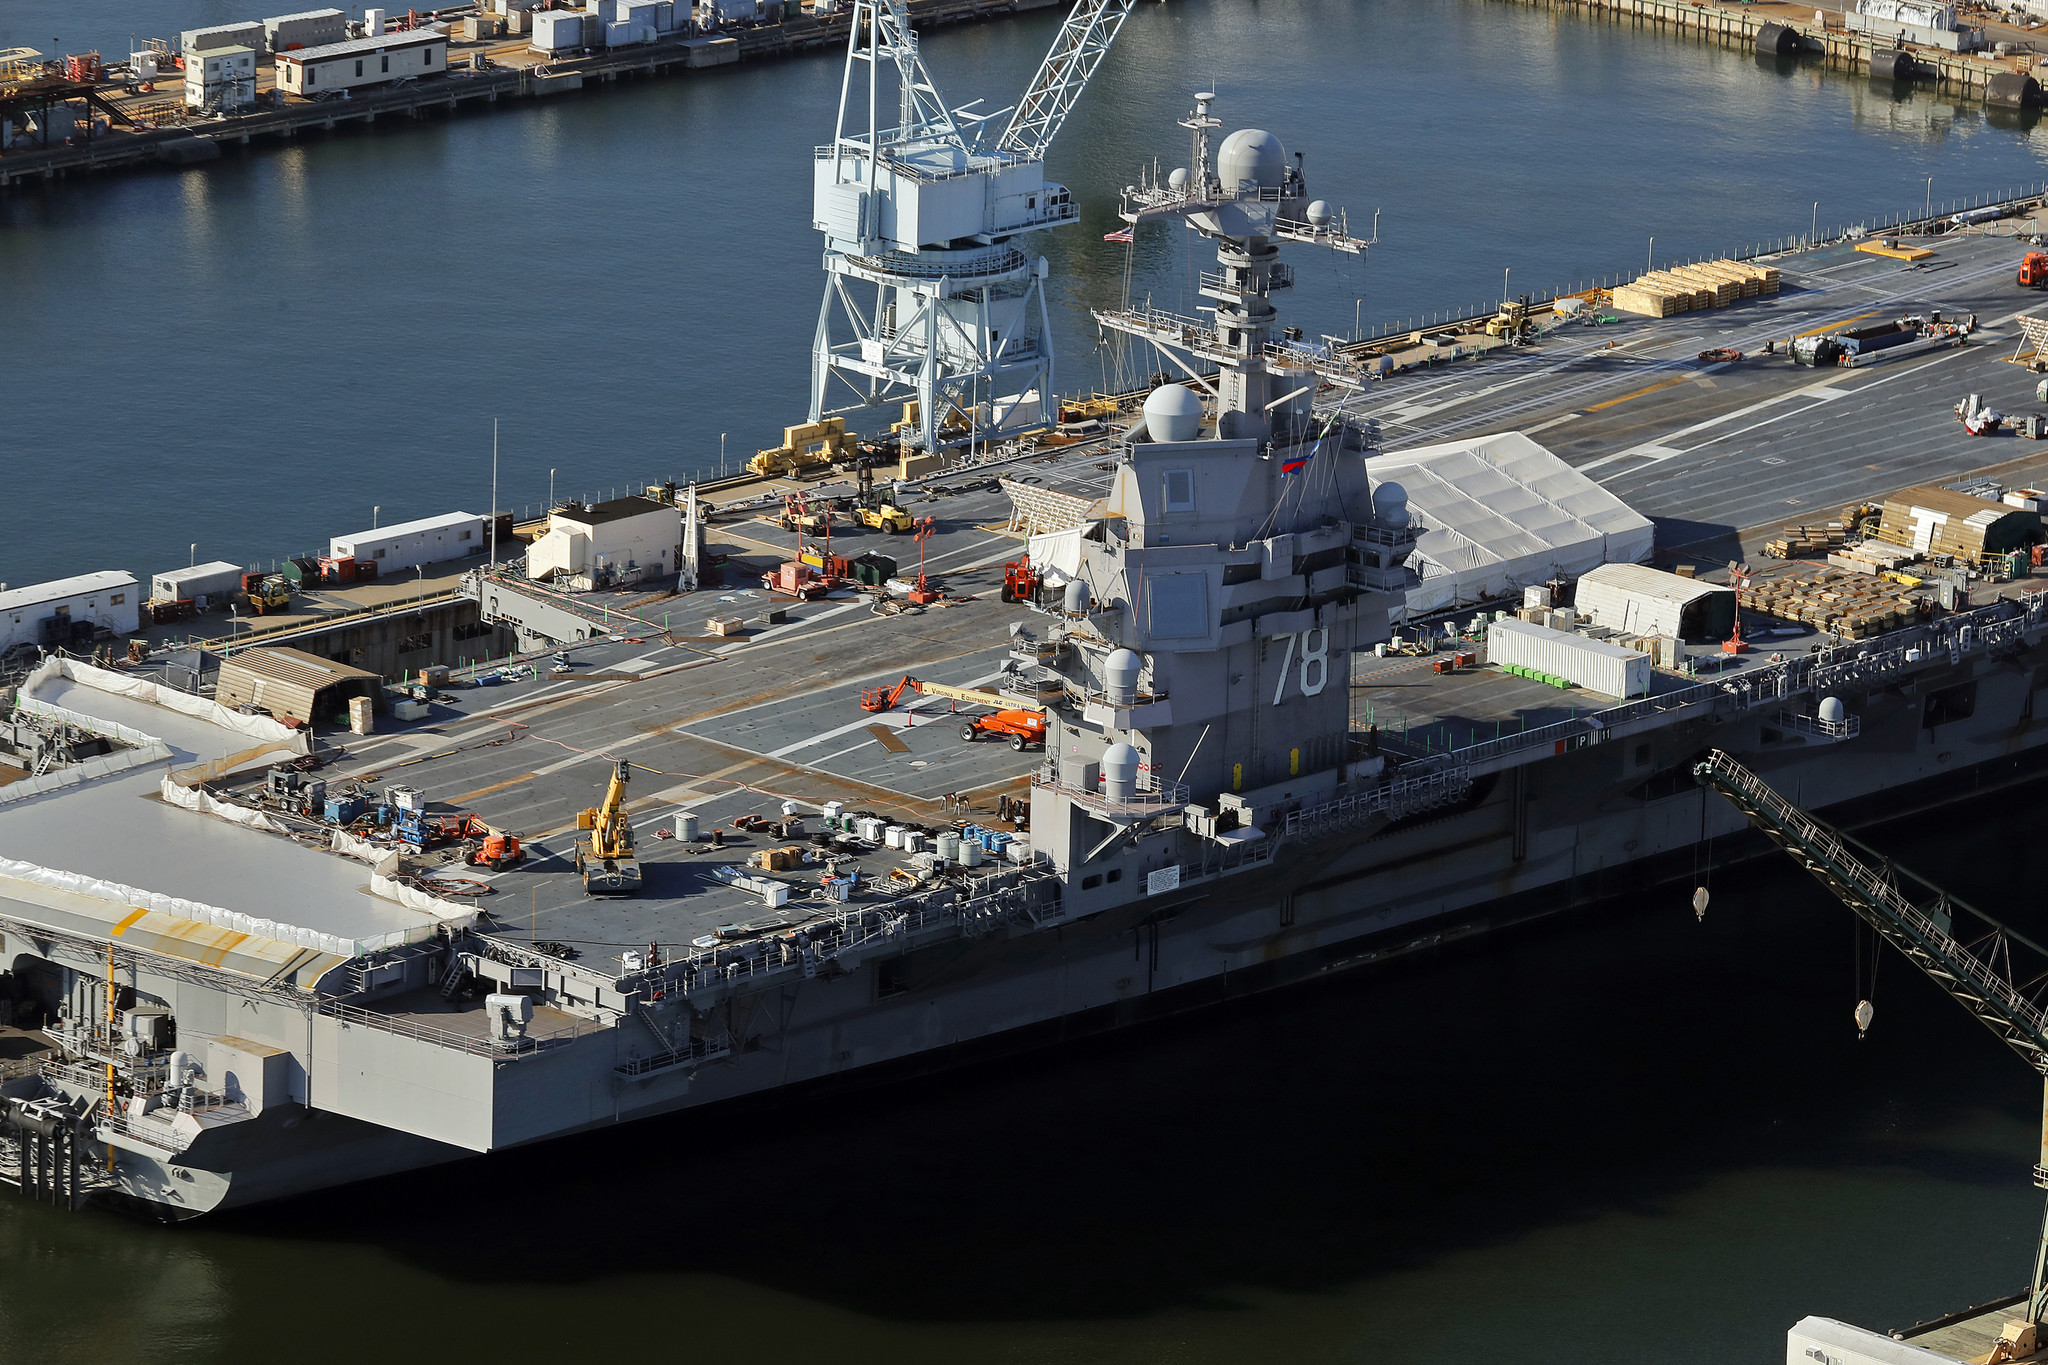 pictures ford aircraft carrier daily press. Cars Review. Best American Auto & Cars Review